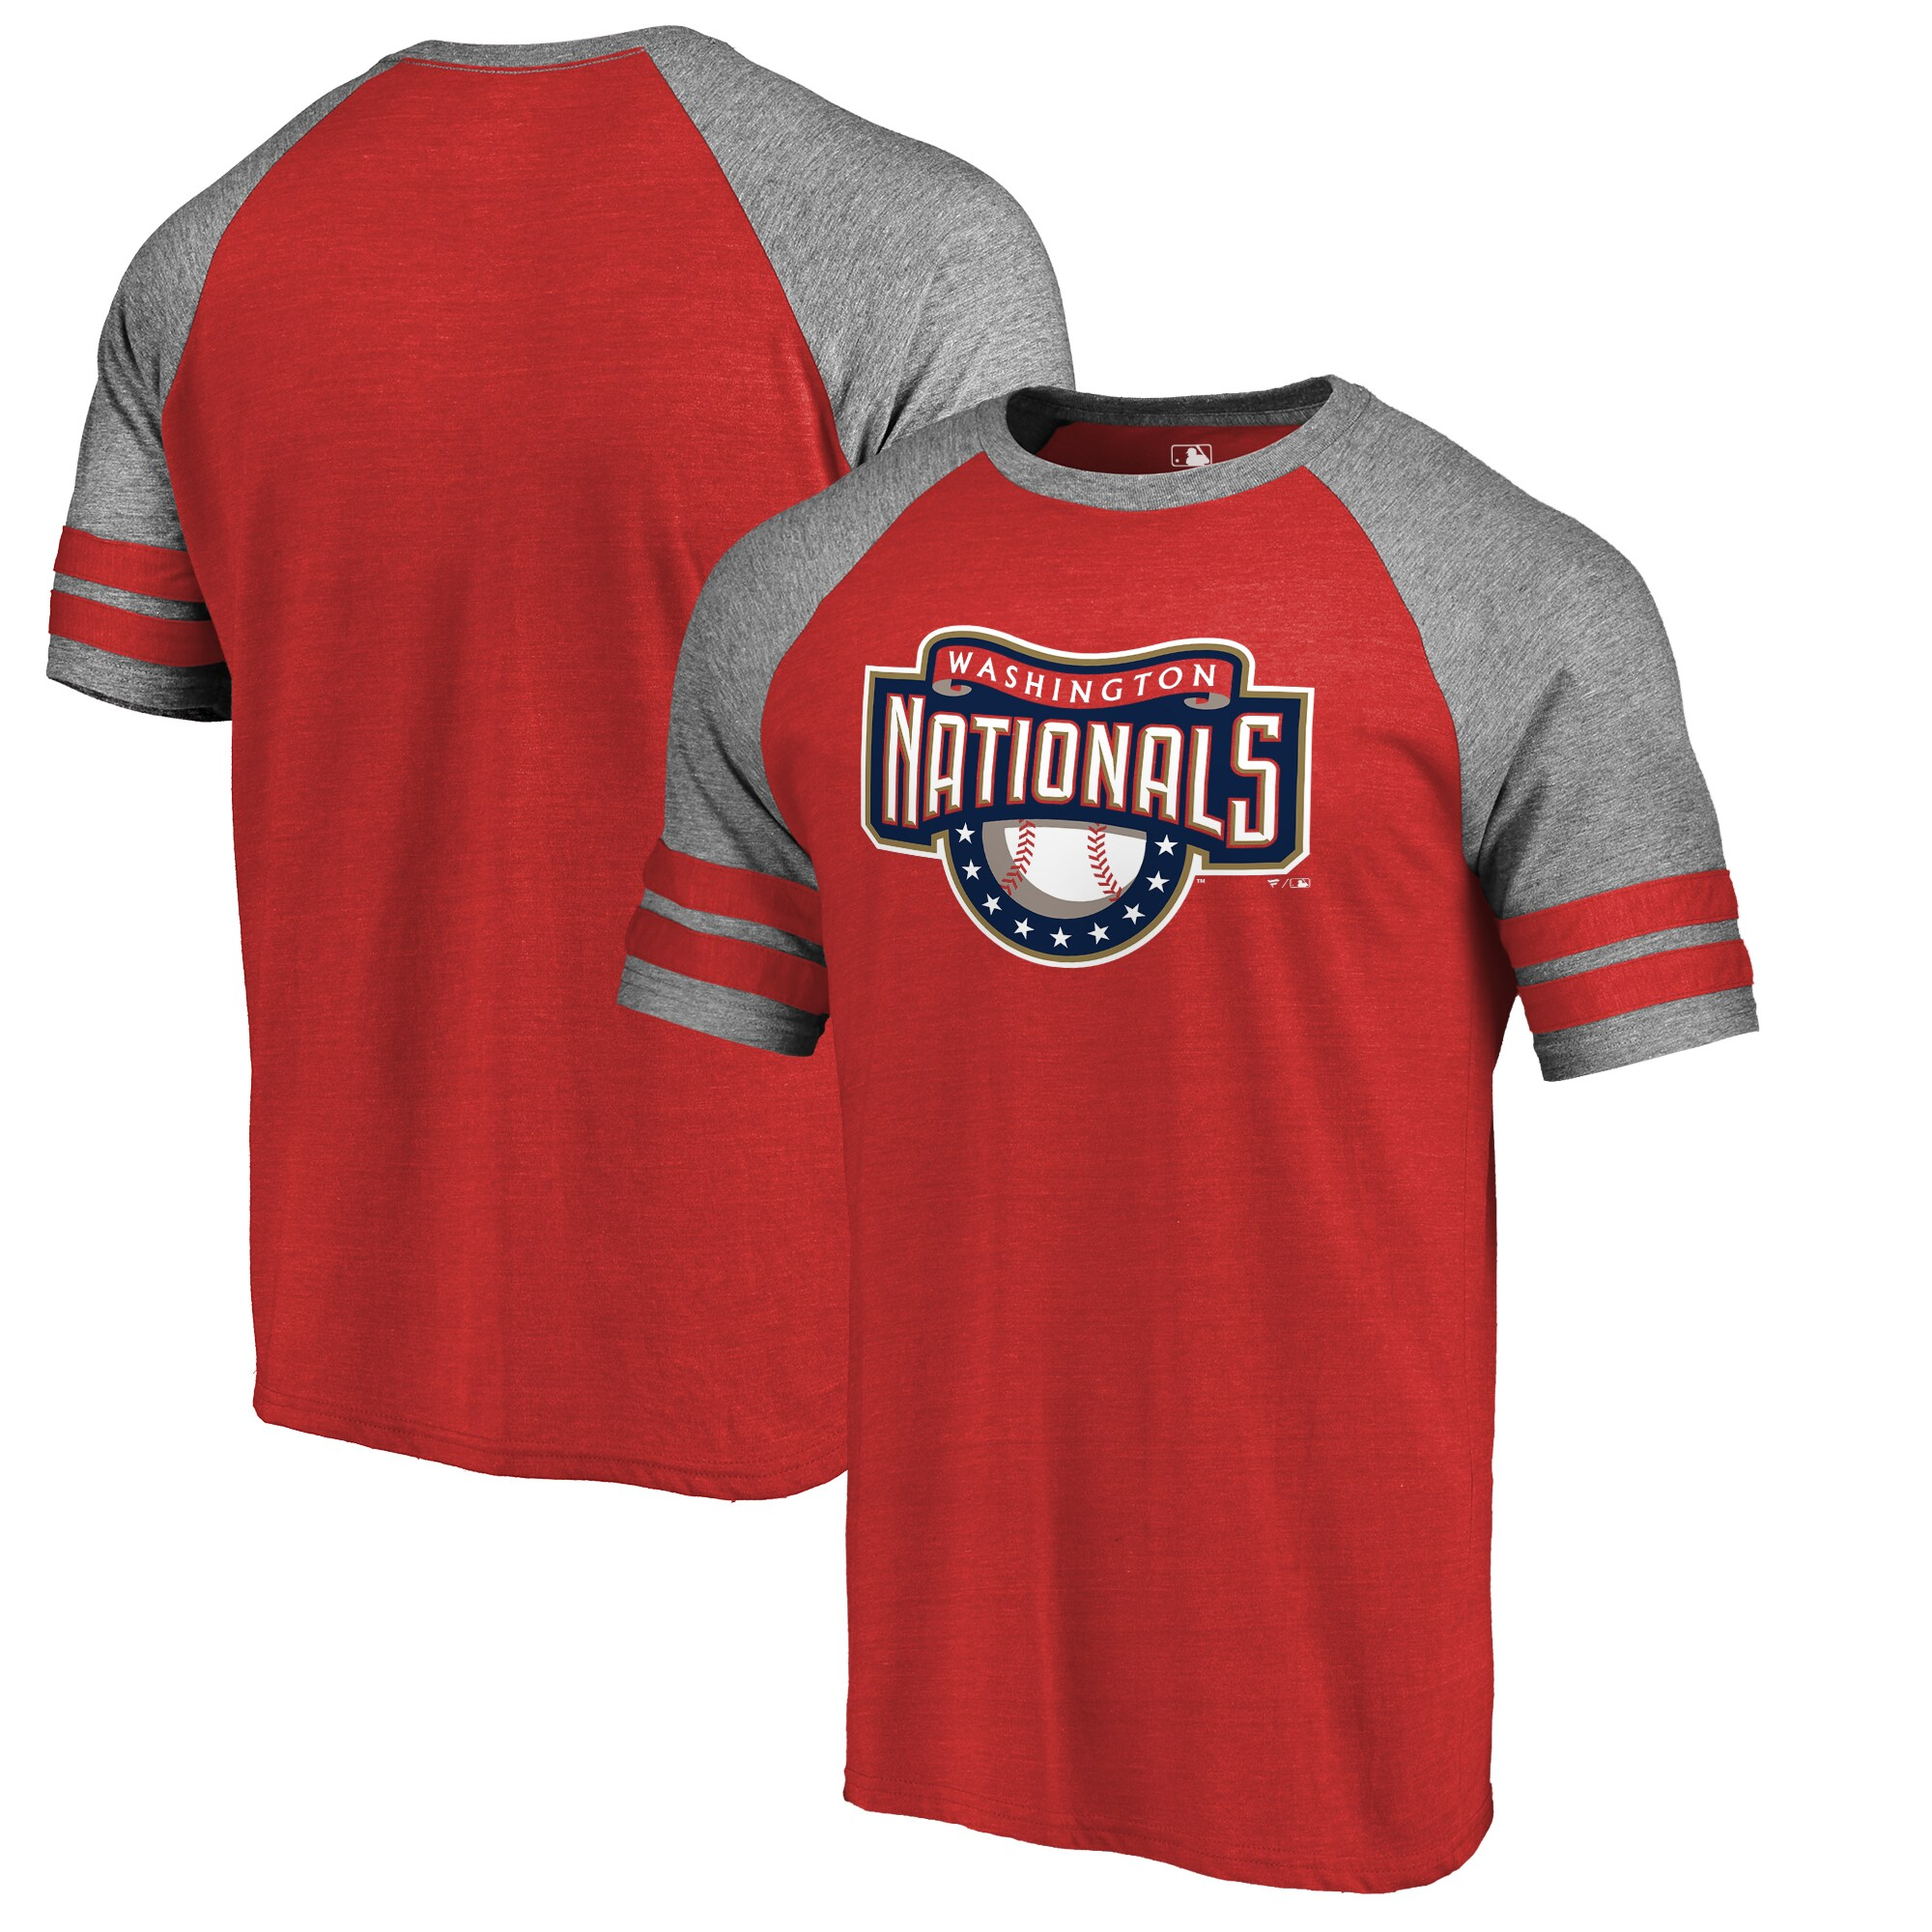 Washington Nationals Fanatics Branded Huntington Cooperstown Collection Tri-Blend T-Shirt - Red